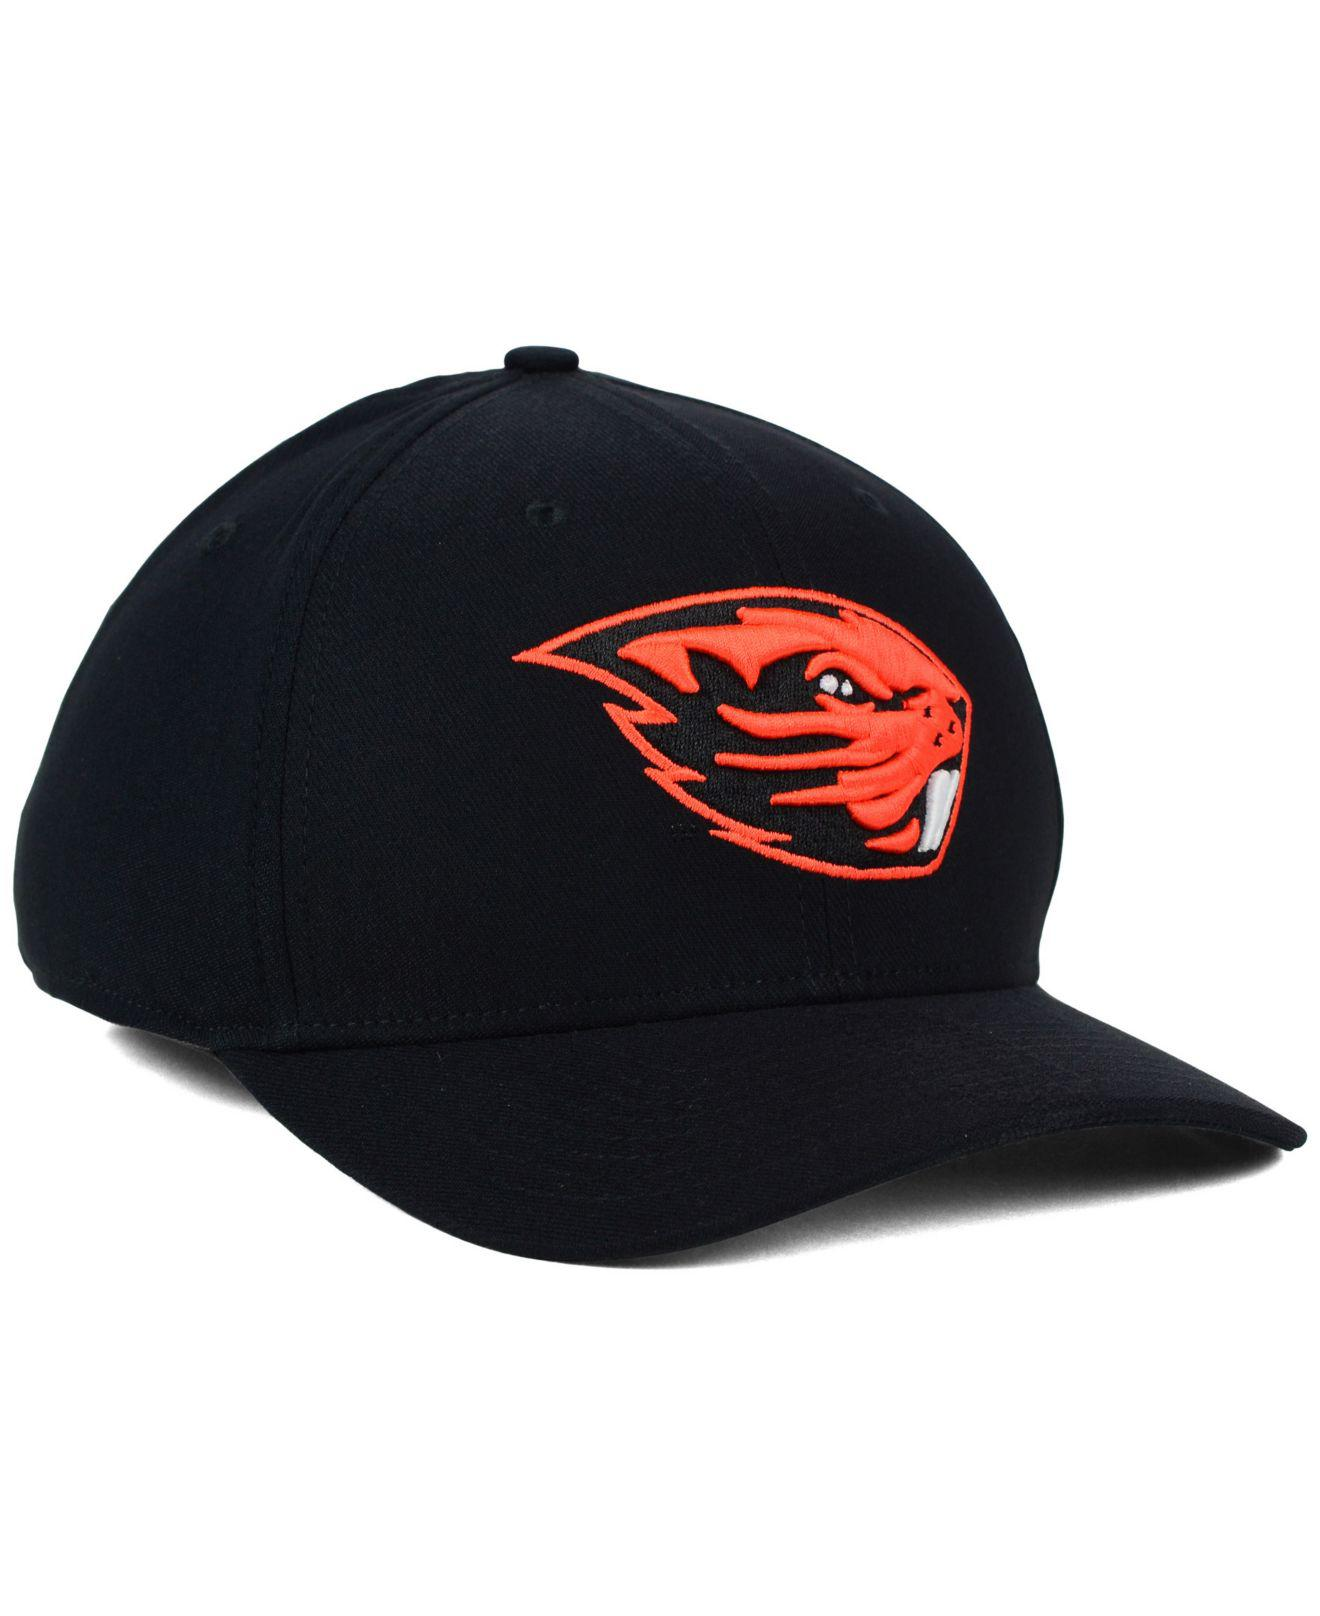 cbcba6e2 ... spain nike black oregon state beavers classic swoosh cap for men lyst.  view fullscreen 77869